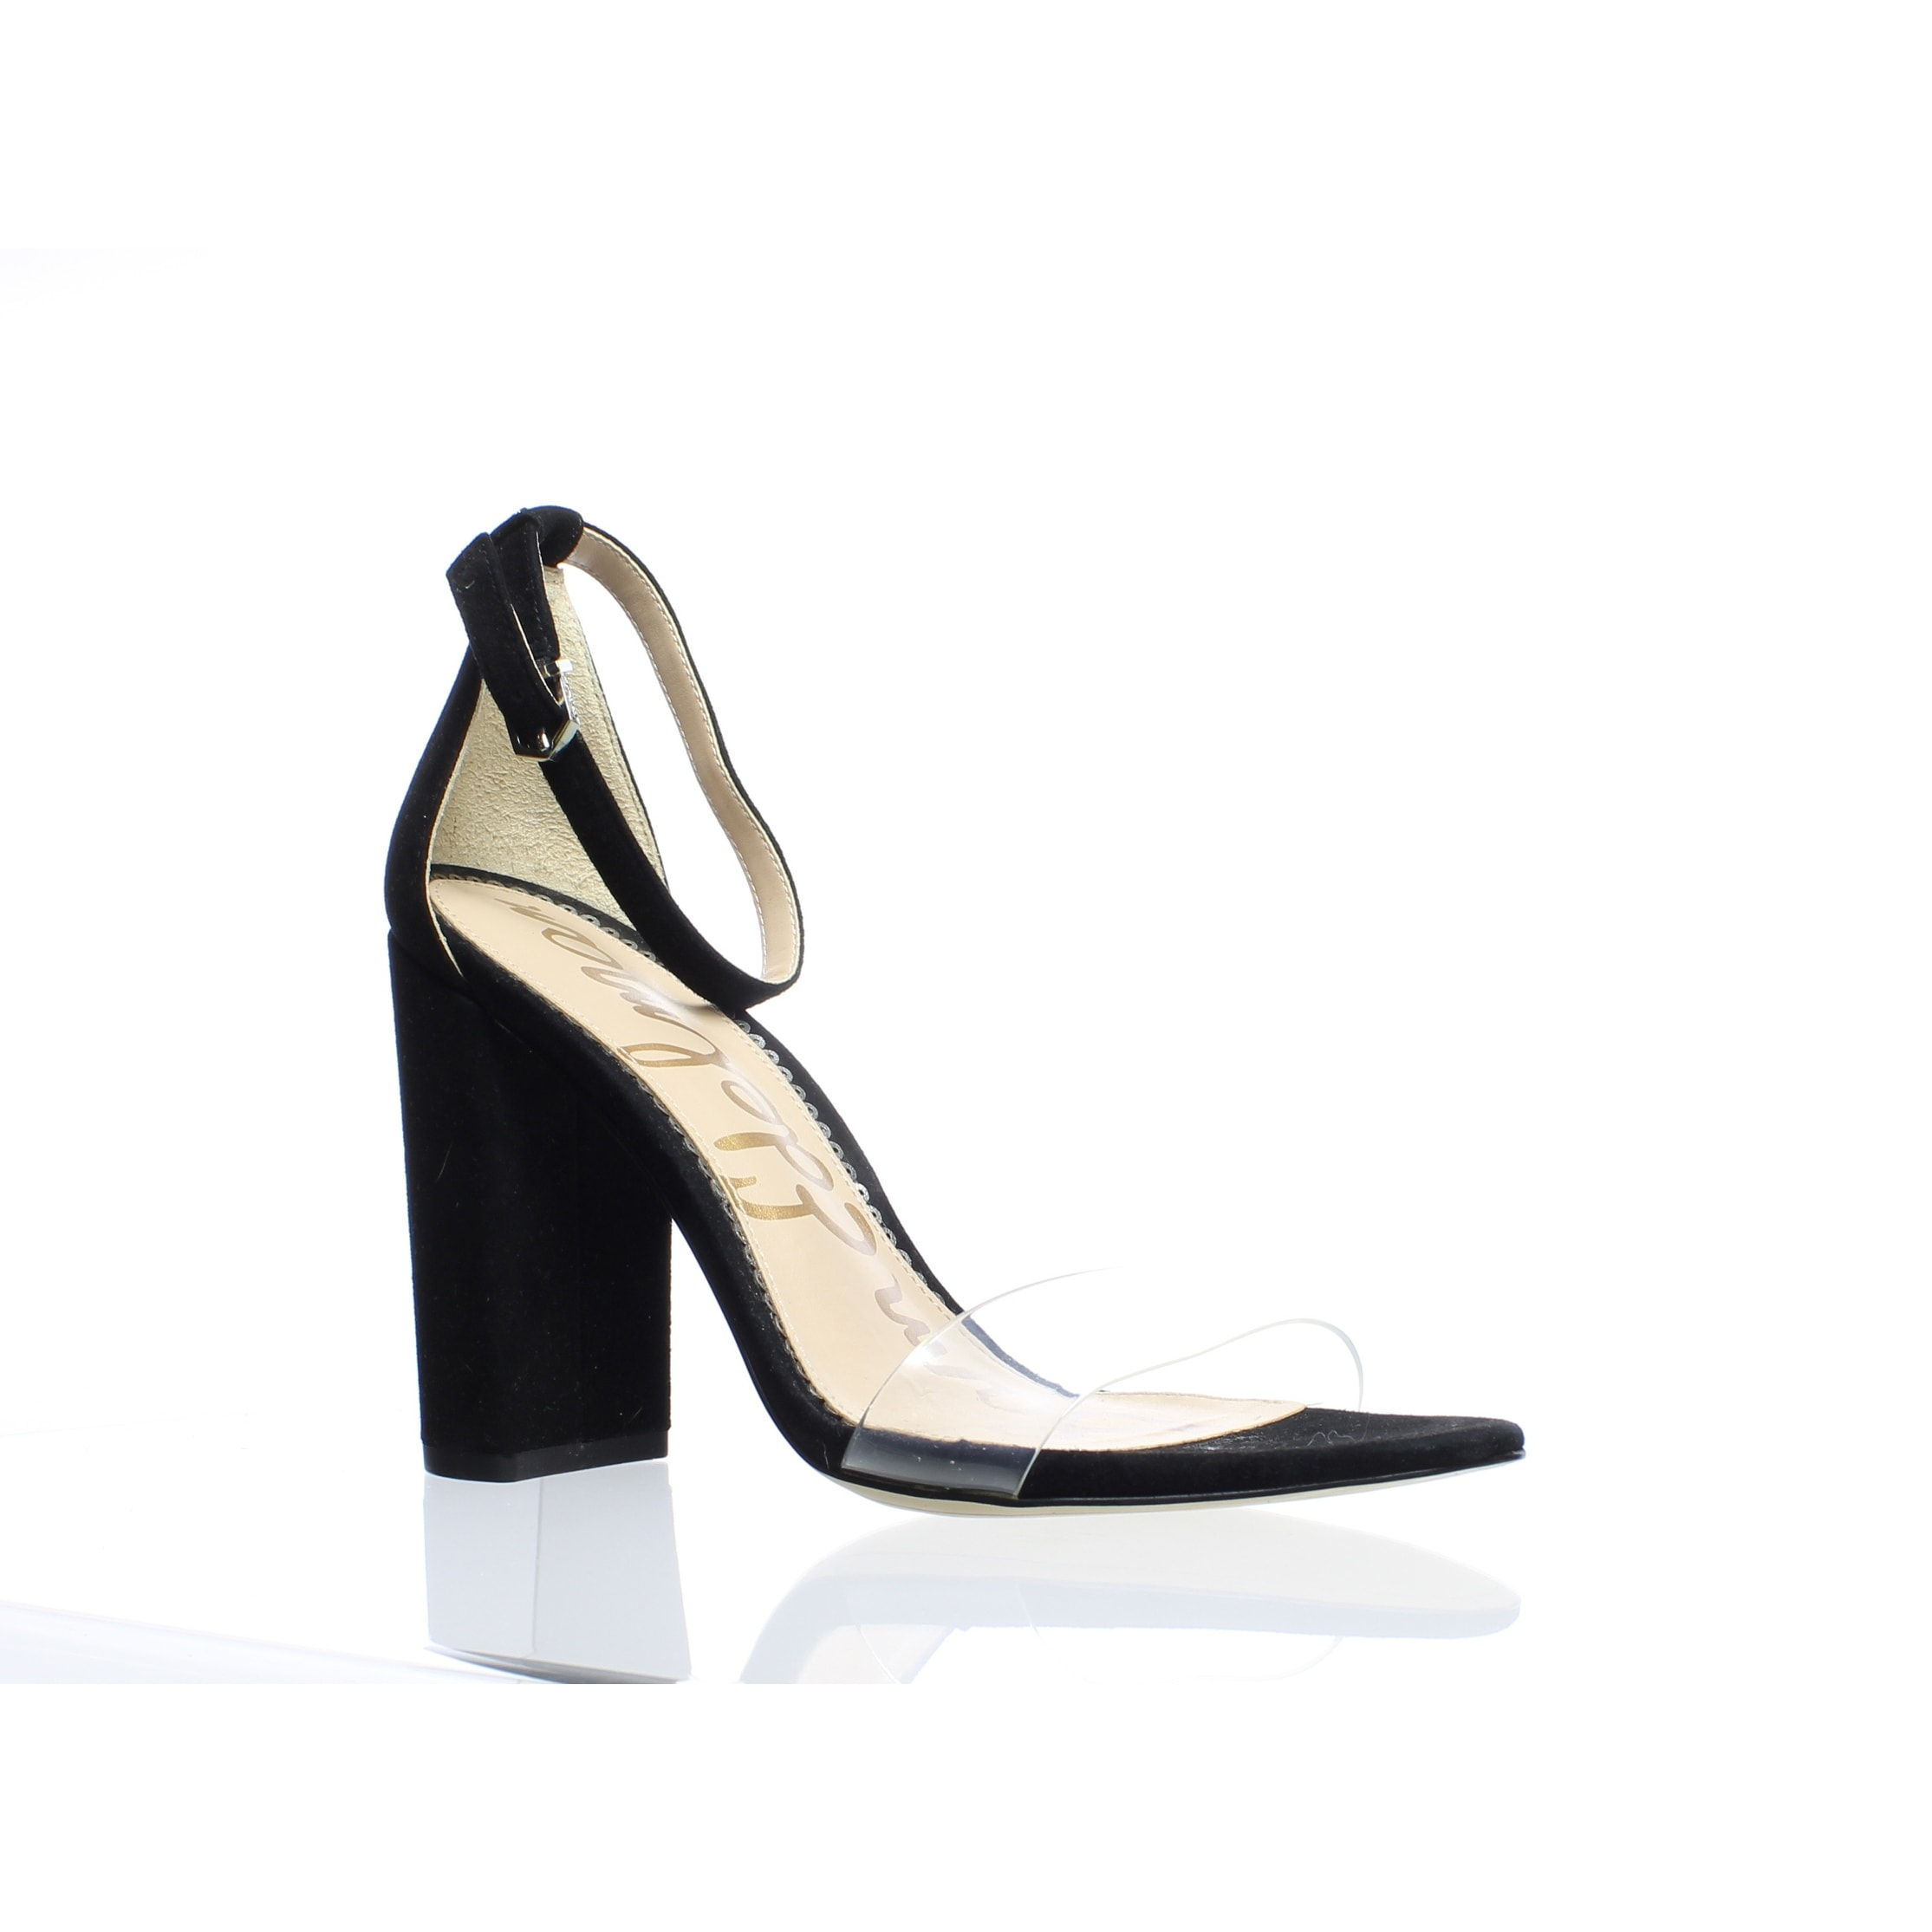 7ffd037d0c4f New Products - Sam Edelman Women s Shoes